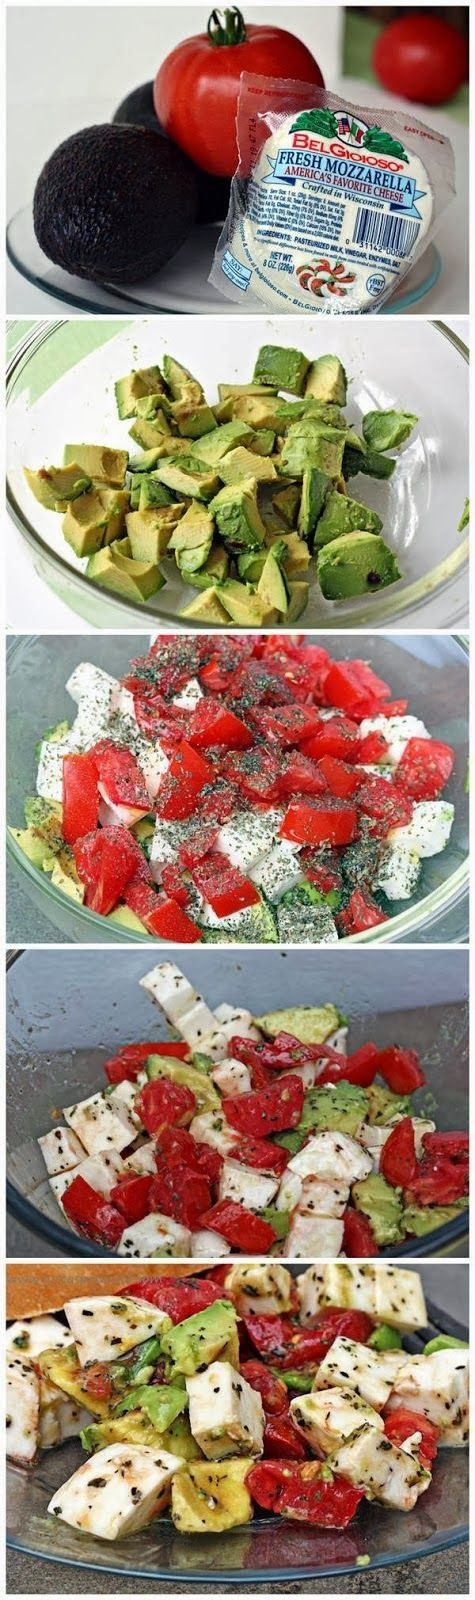 Agnese Italian Recipes: Mozzarella Avocado Tomato Salad